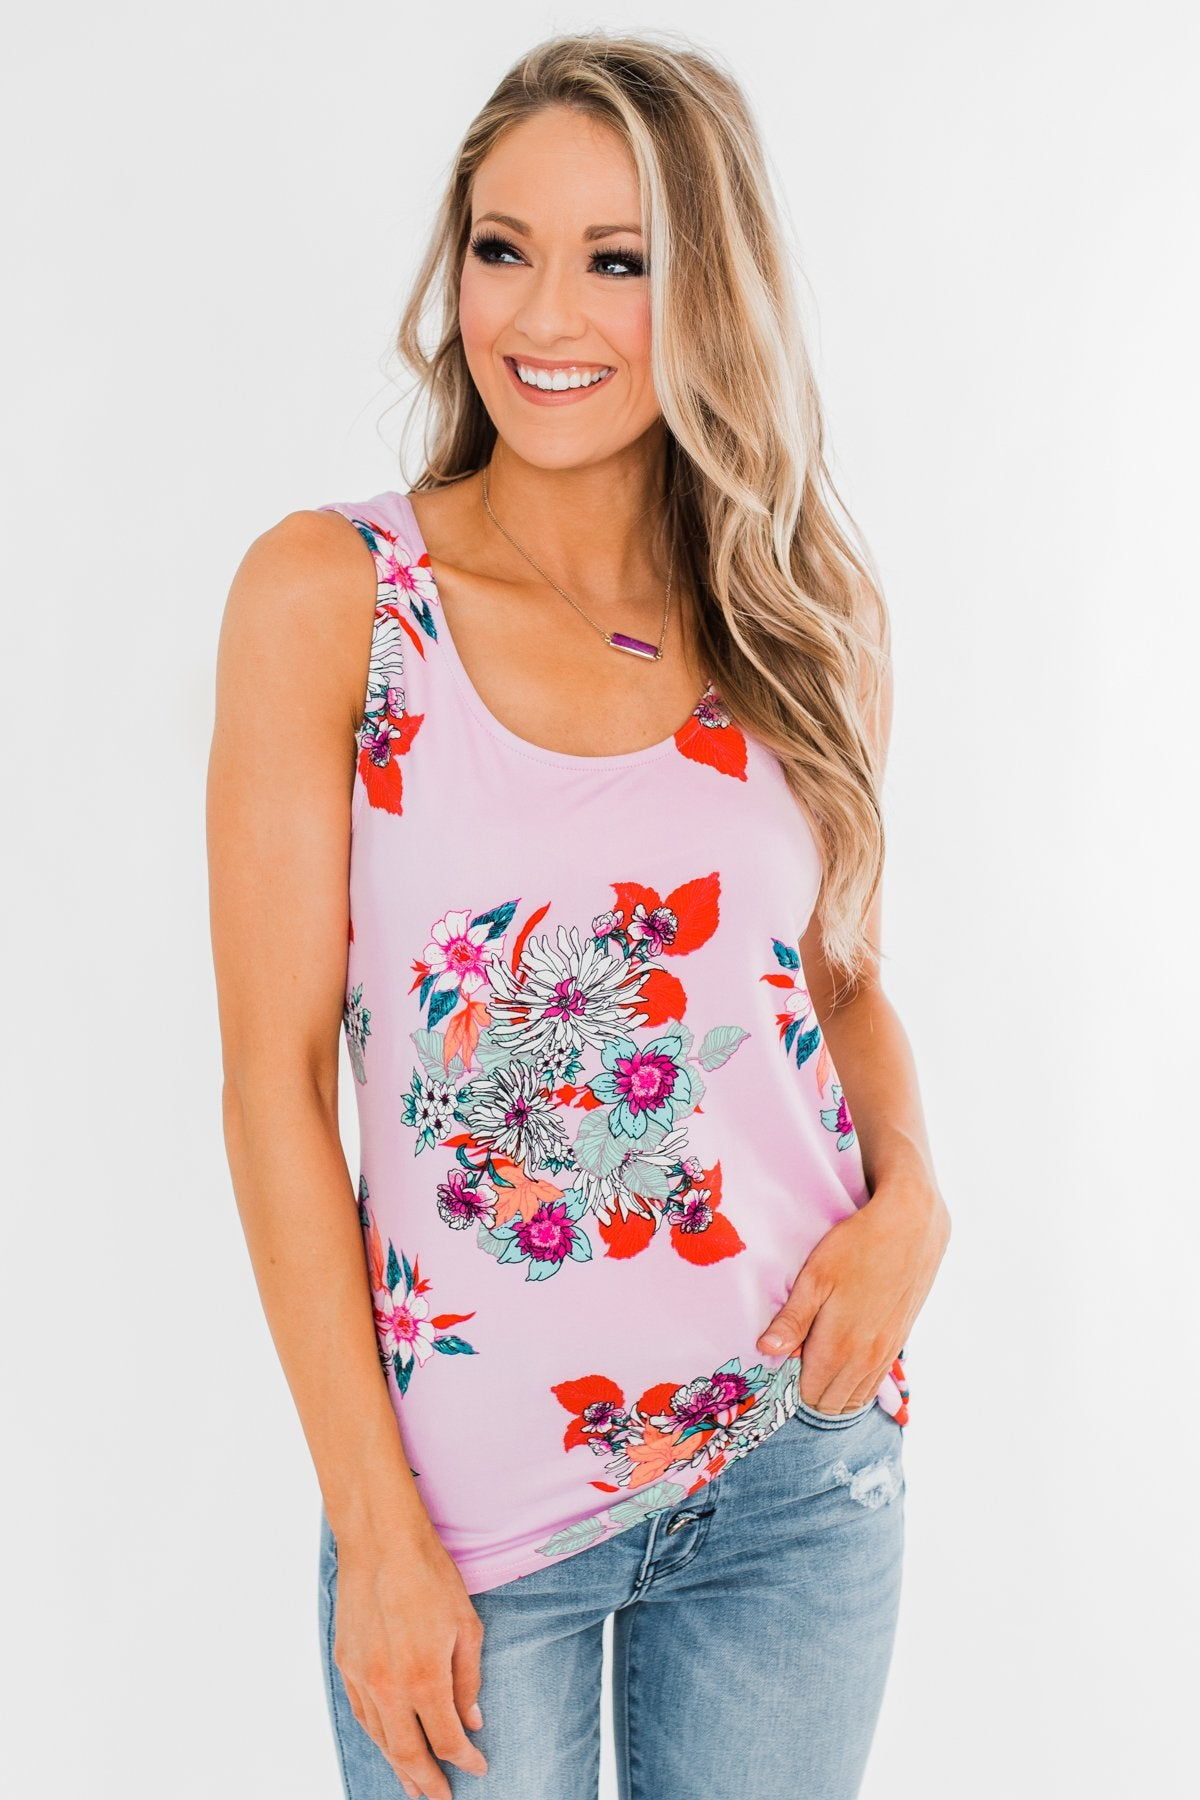 Waiting For You Floral Tank Top- Pink Lavender